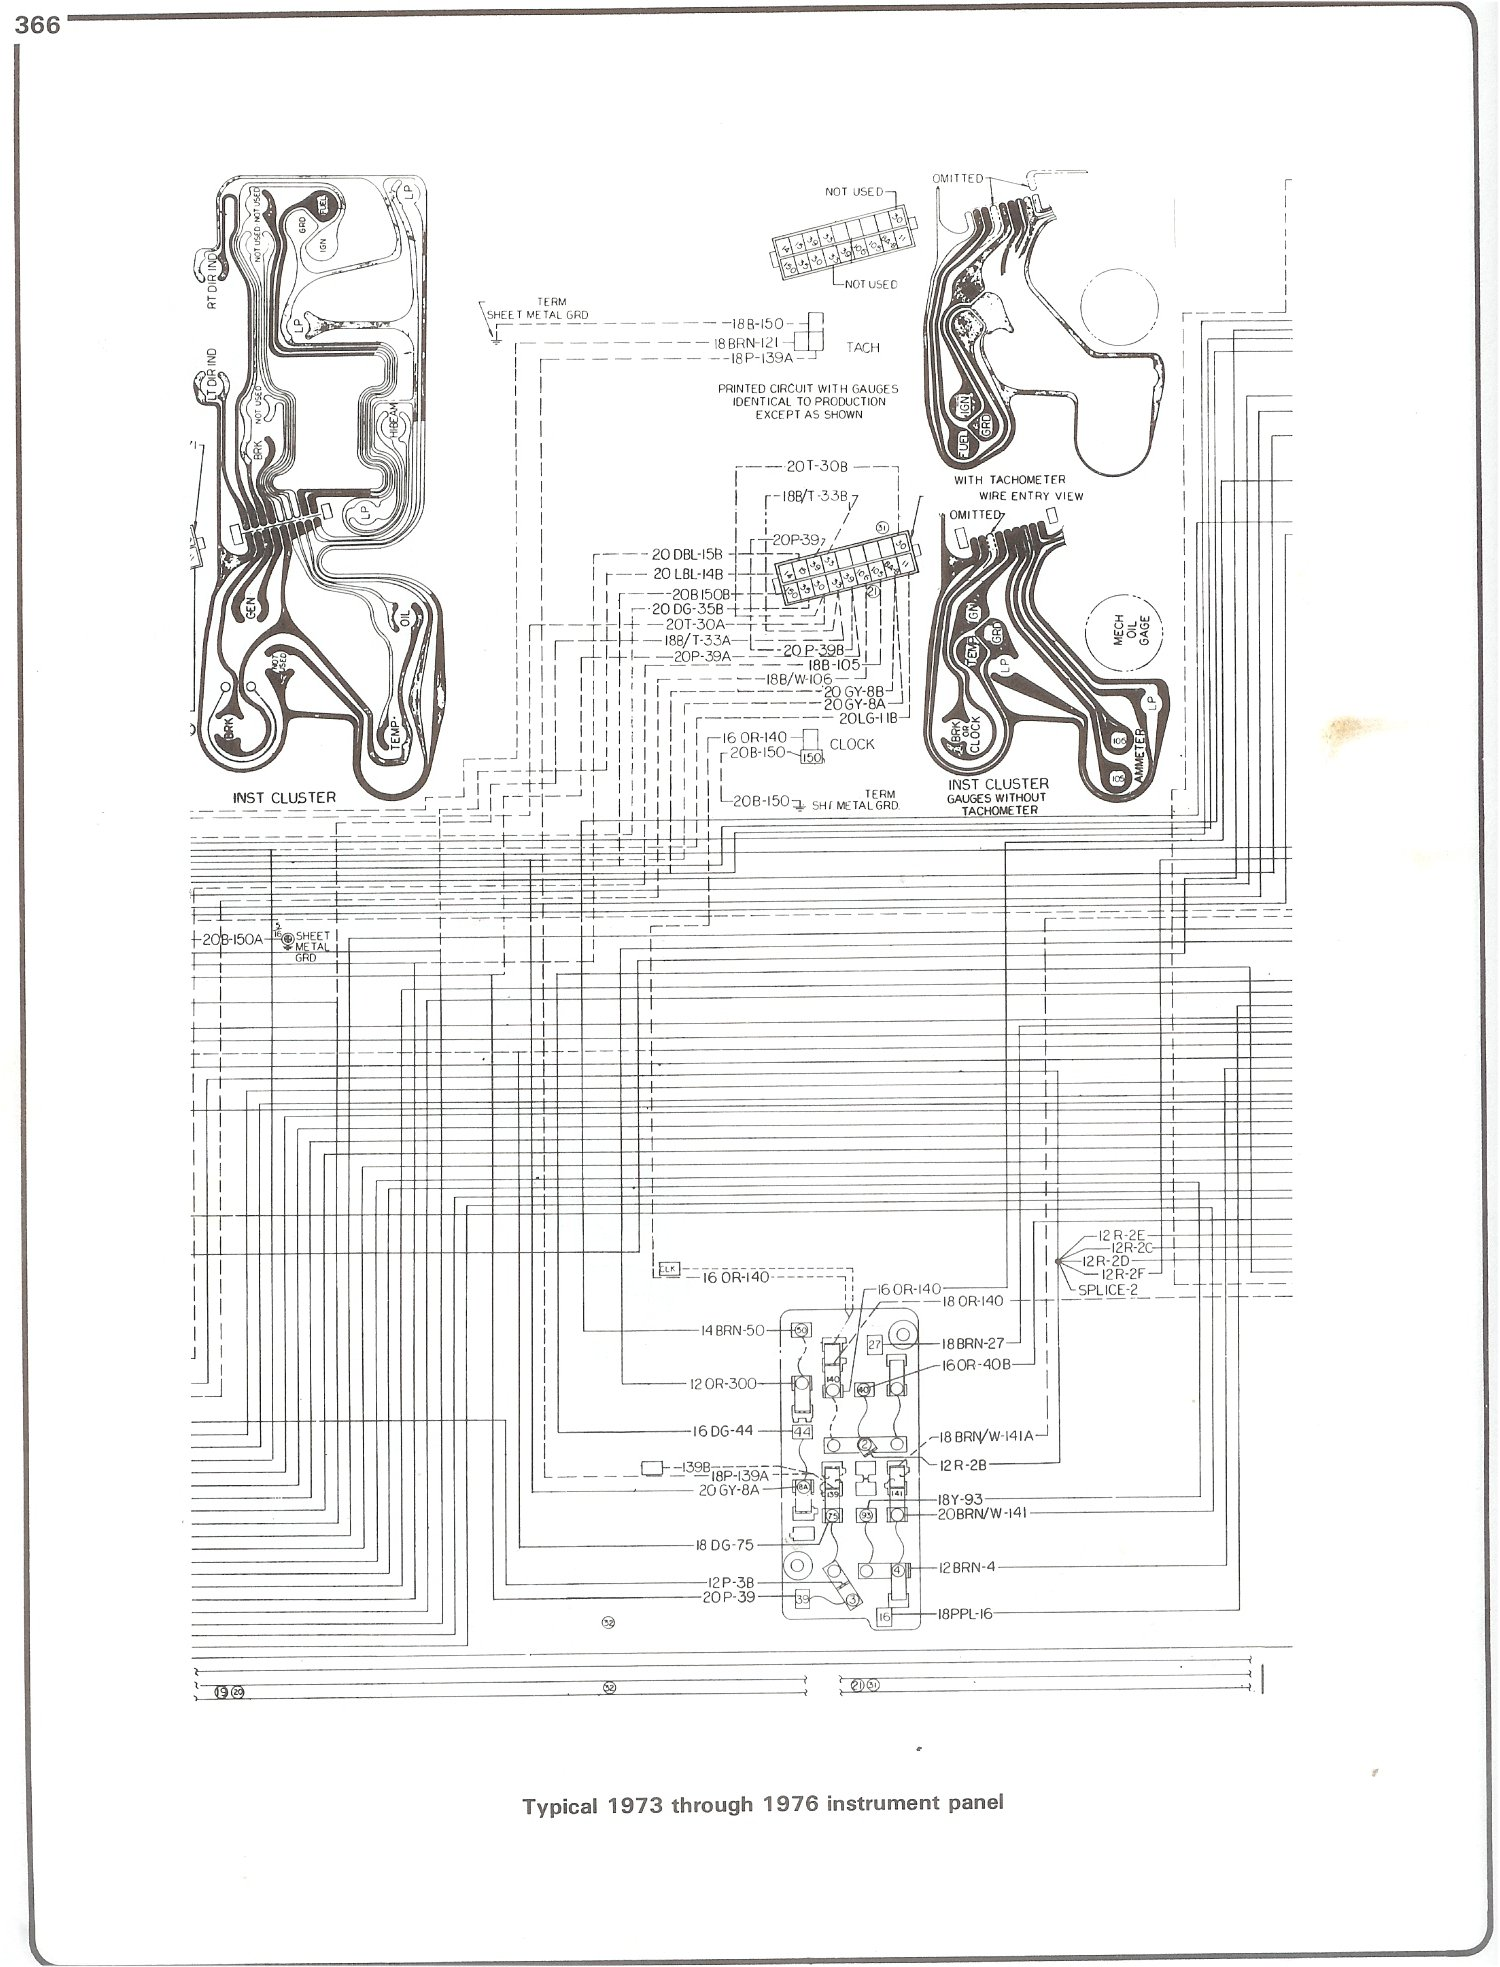 76 Chevy Engine Wiring Harness Diagram Auto Electrical Uk Bmw 325ti Diagrams C10 Get Free Image About